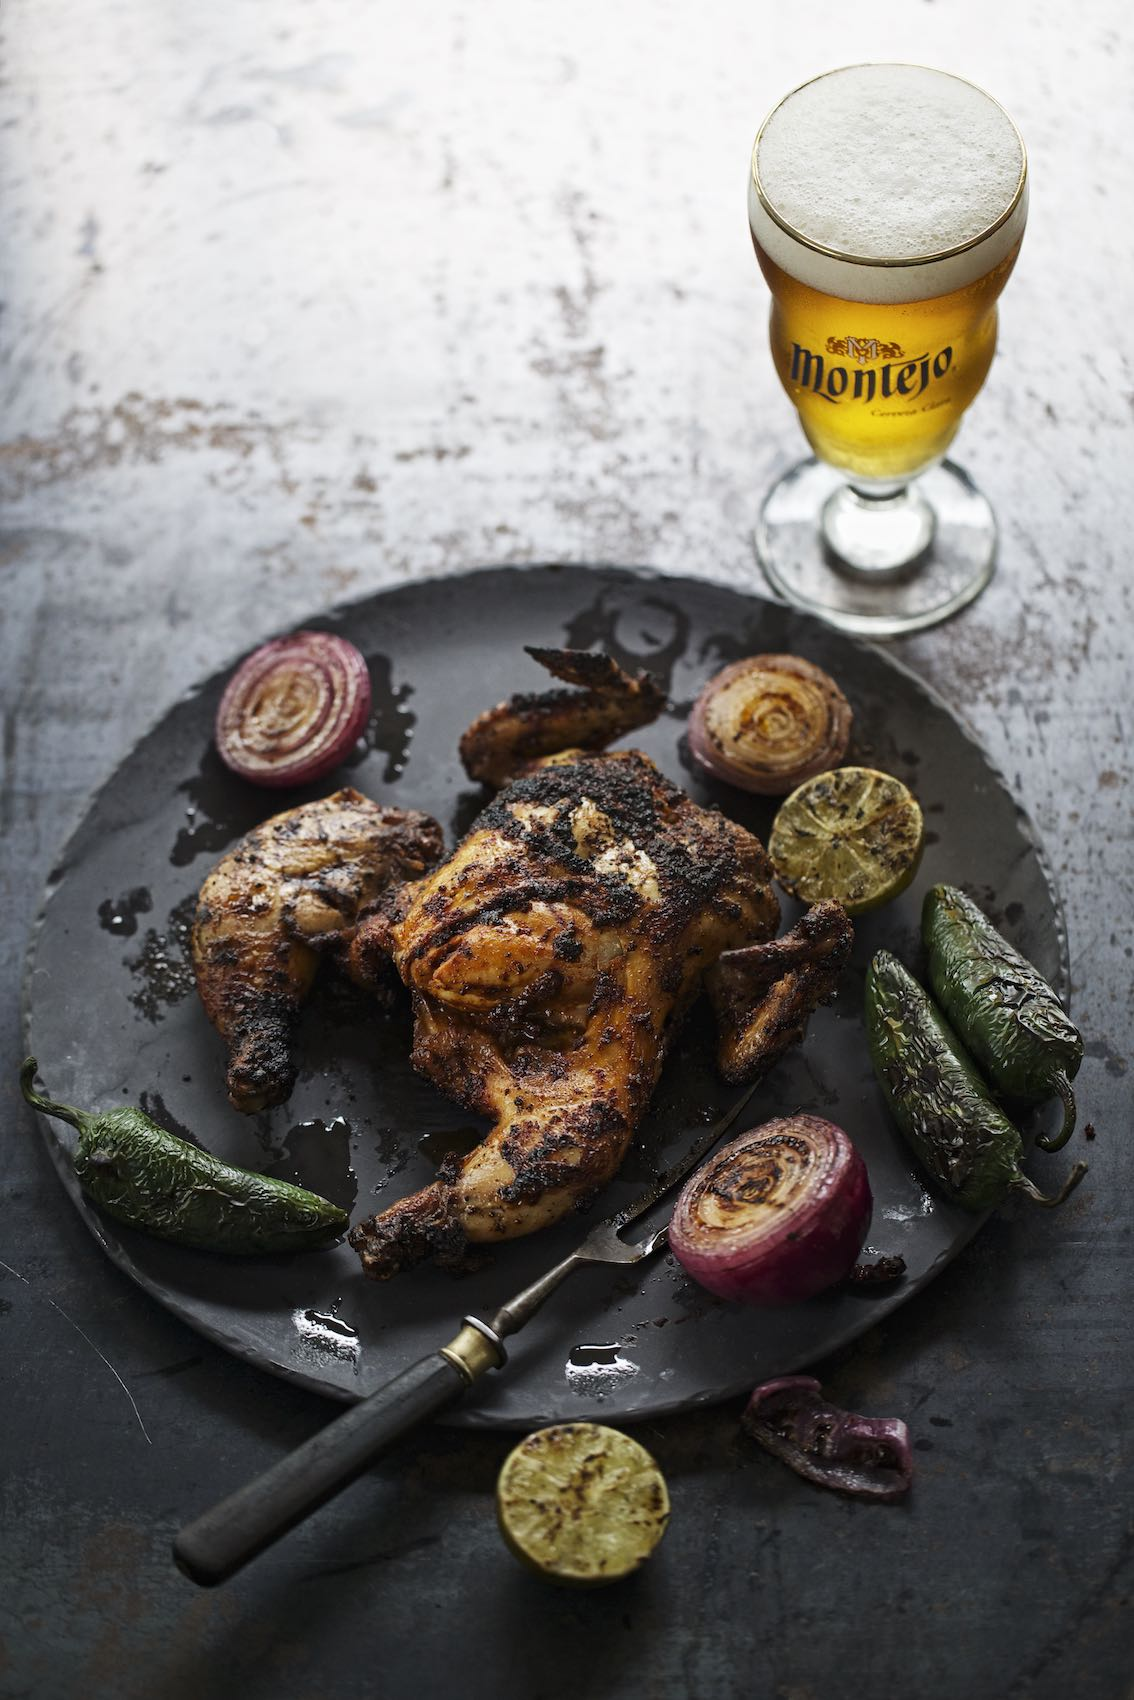 Jody Horton Photography - Montejo Beer with grilled chicken and vegetables on slate plate.